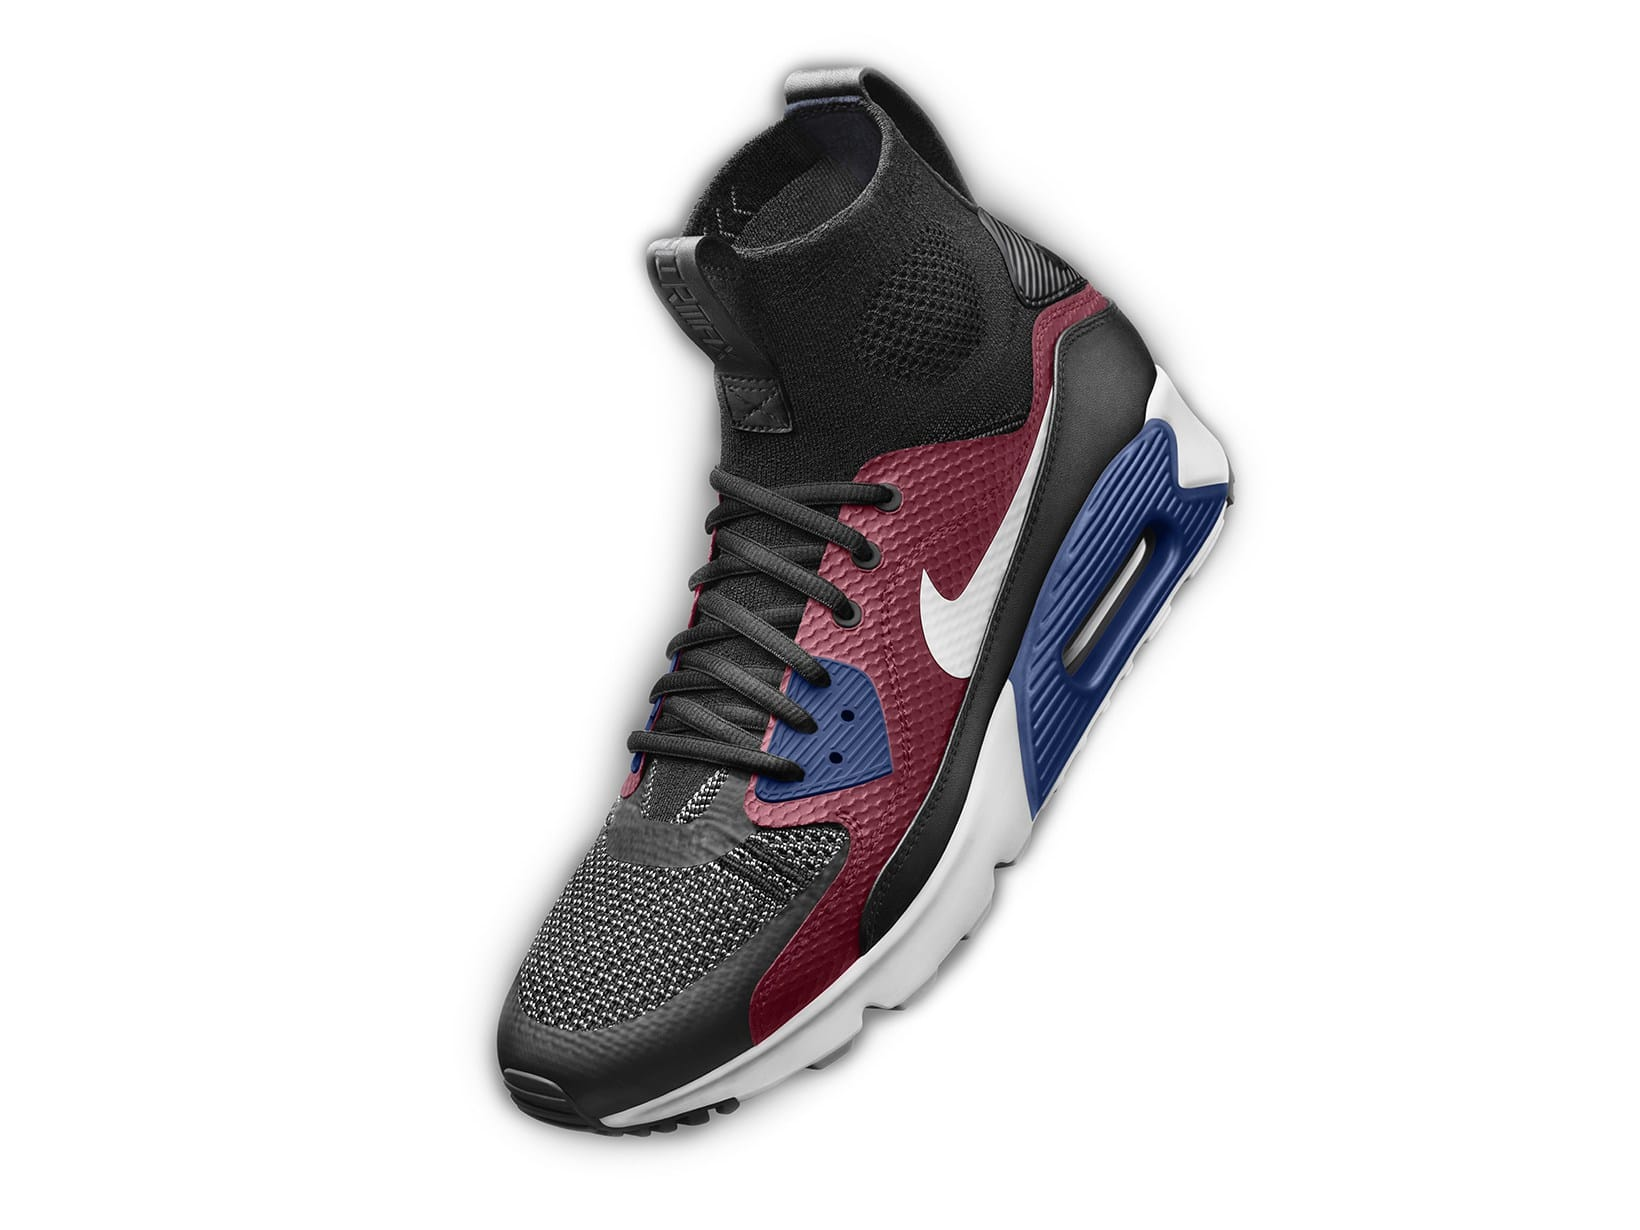 78944cfaa9d Nike-Air-Max-90-Ultra-Superfly-T-bestellen.jpg